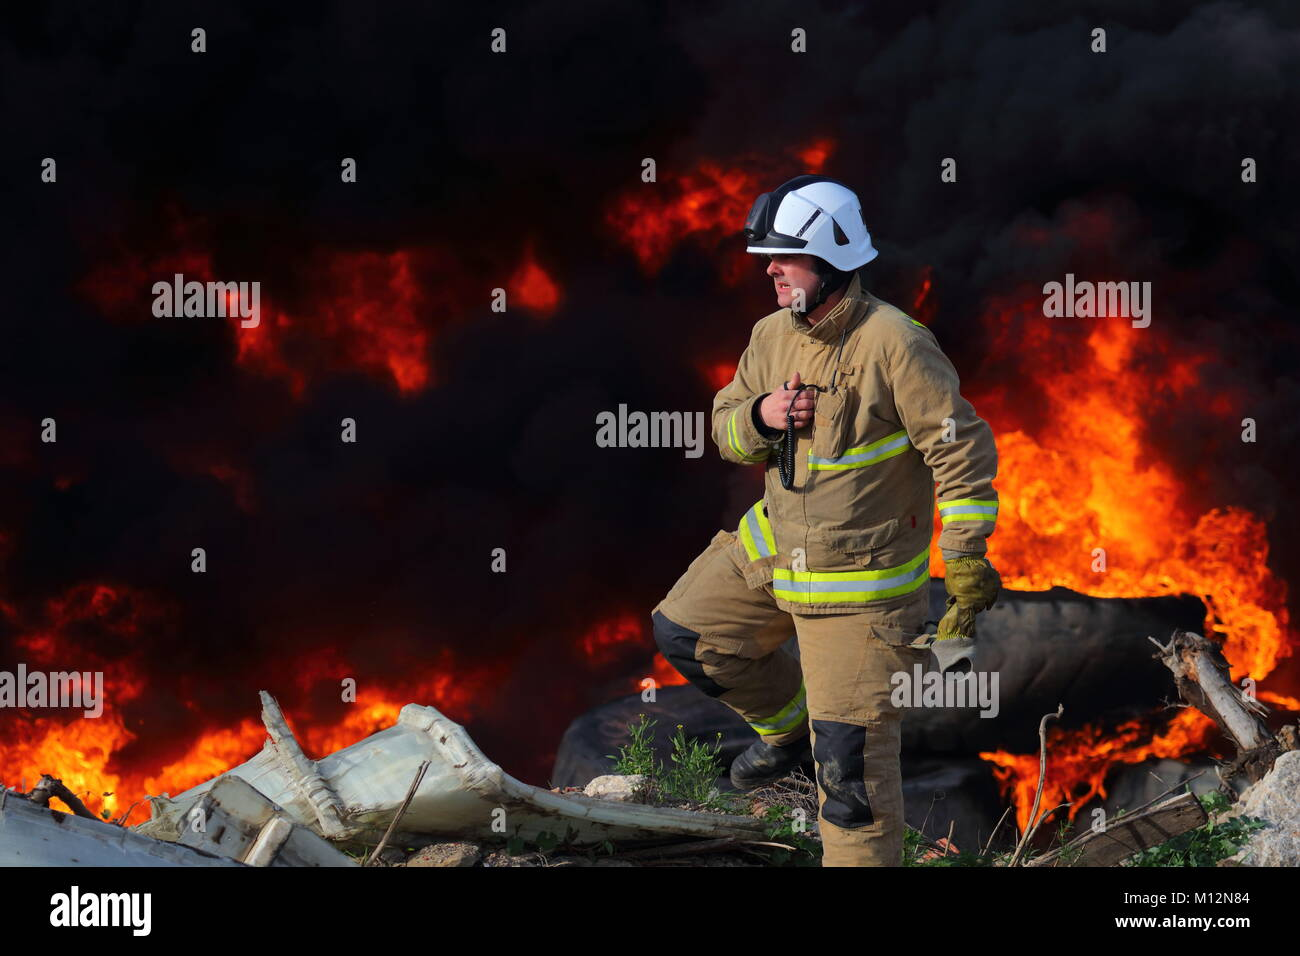 Calling For Backup - Stock Image